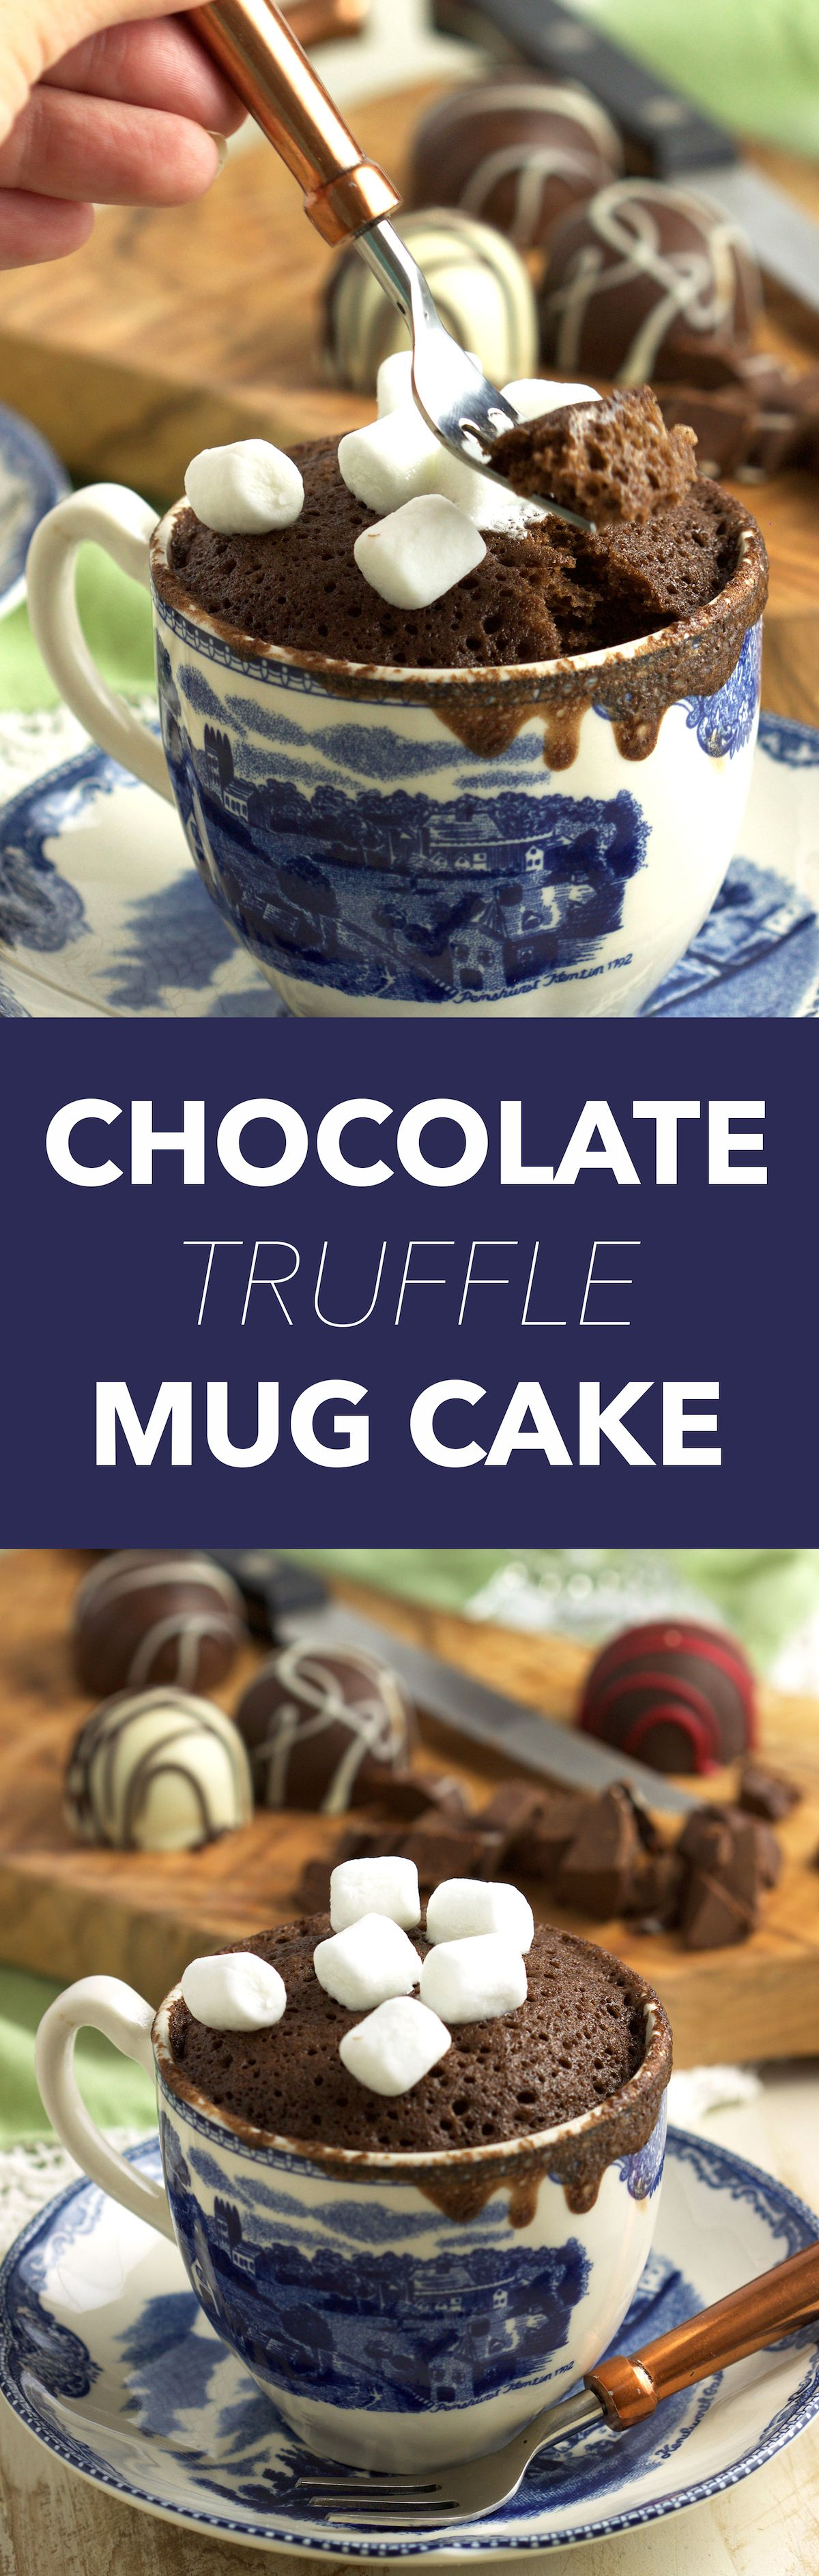 Chocolate Mug Cake Recipe With Creamy Truffles | Easy ...